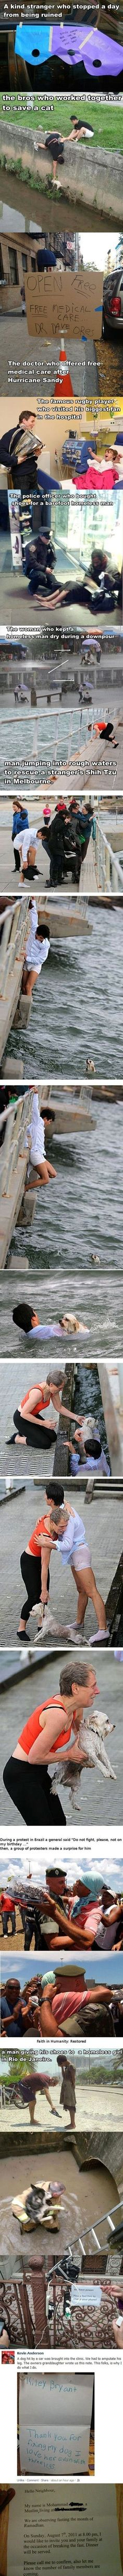 Reviving faith in humanity. This brought tears to my eyes.